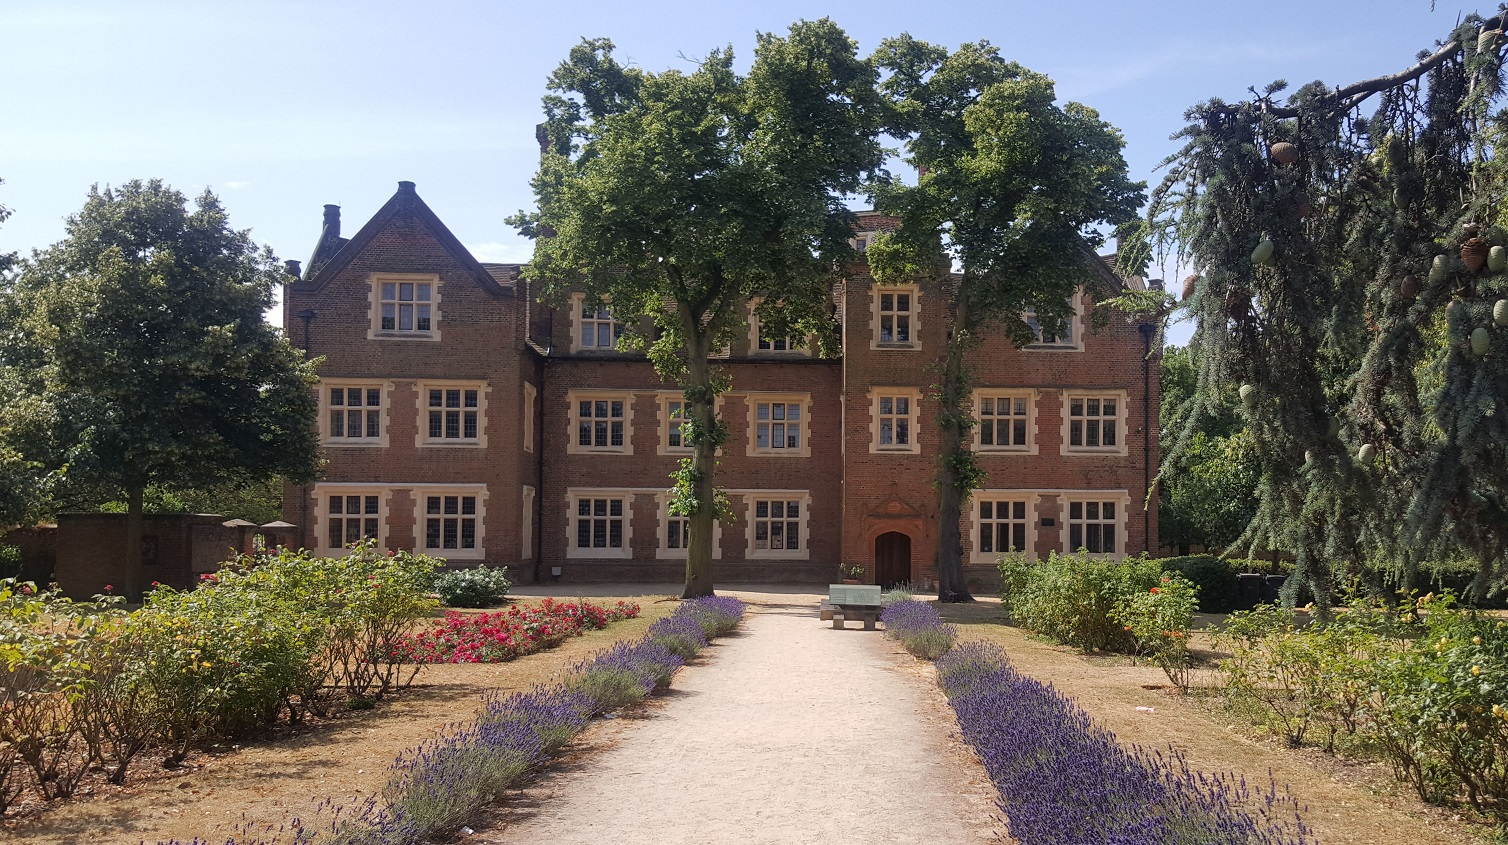 Eastbury Manor House today – Copyright with the author